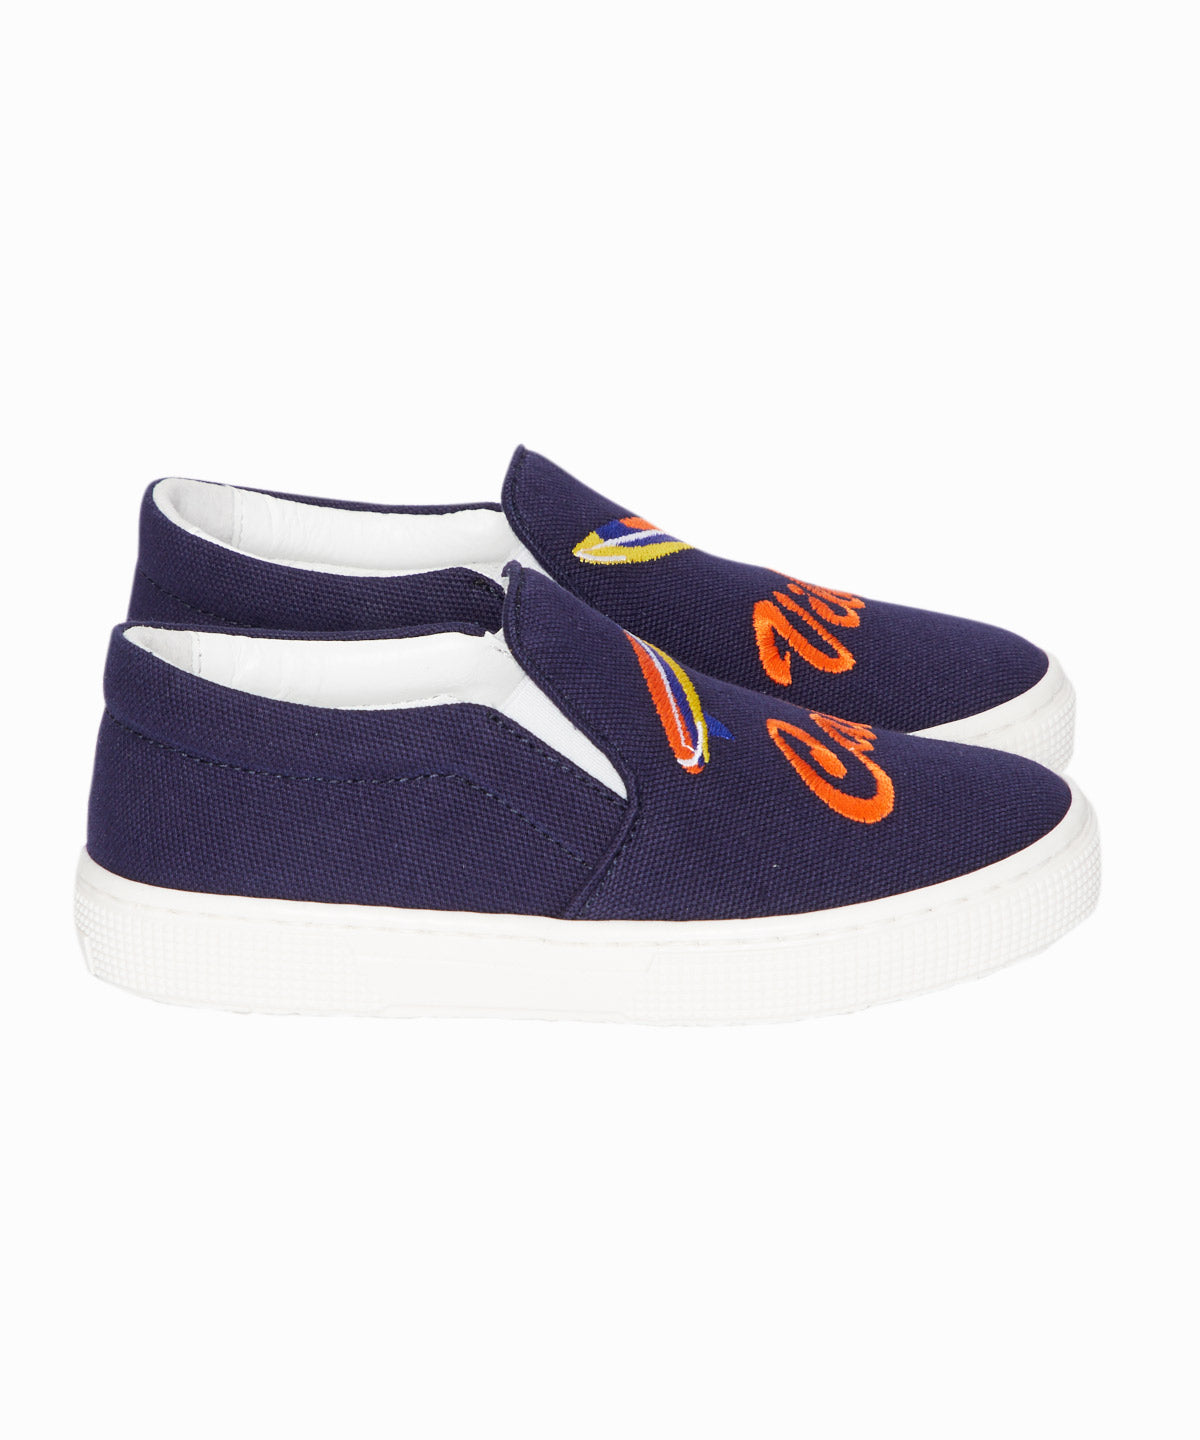 Cali Vibes Canvas Slip-On Sneakers